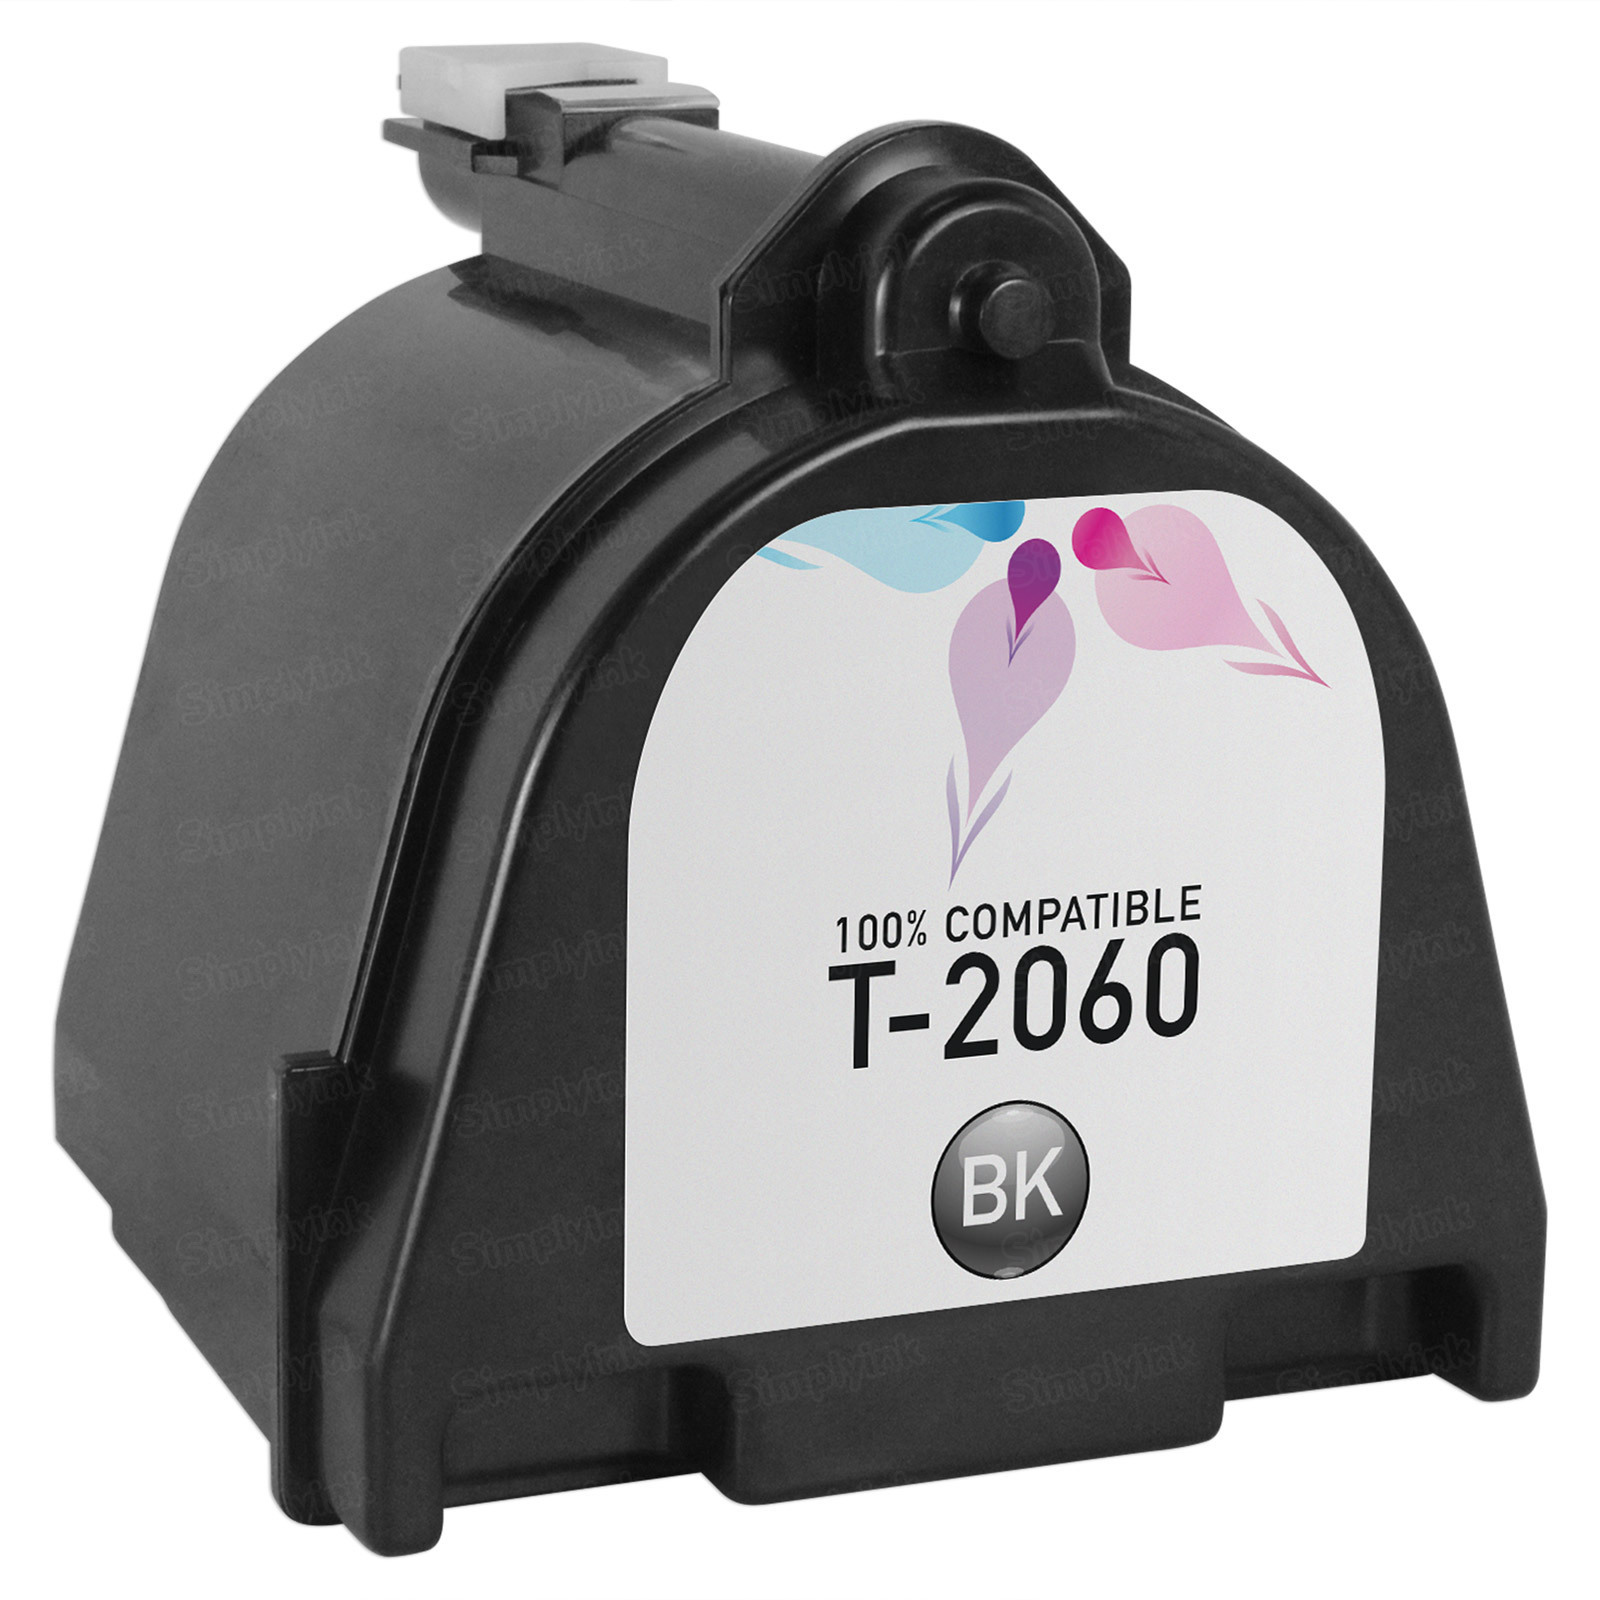 Compatible Toshiba T2060 Black Toner for the BD-2060, BD-2860